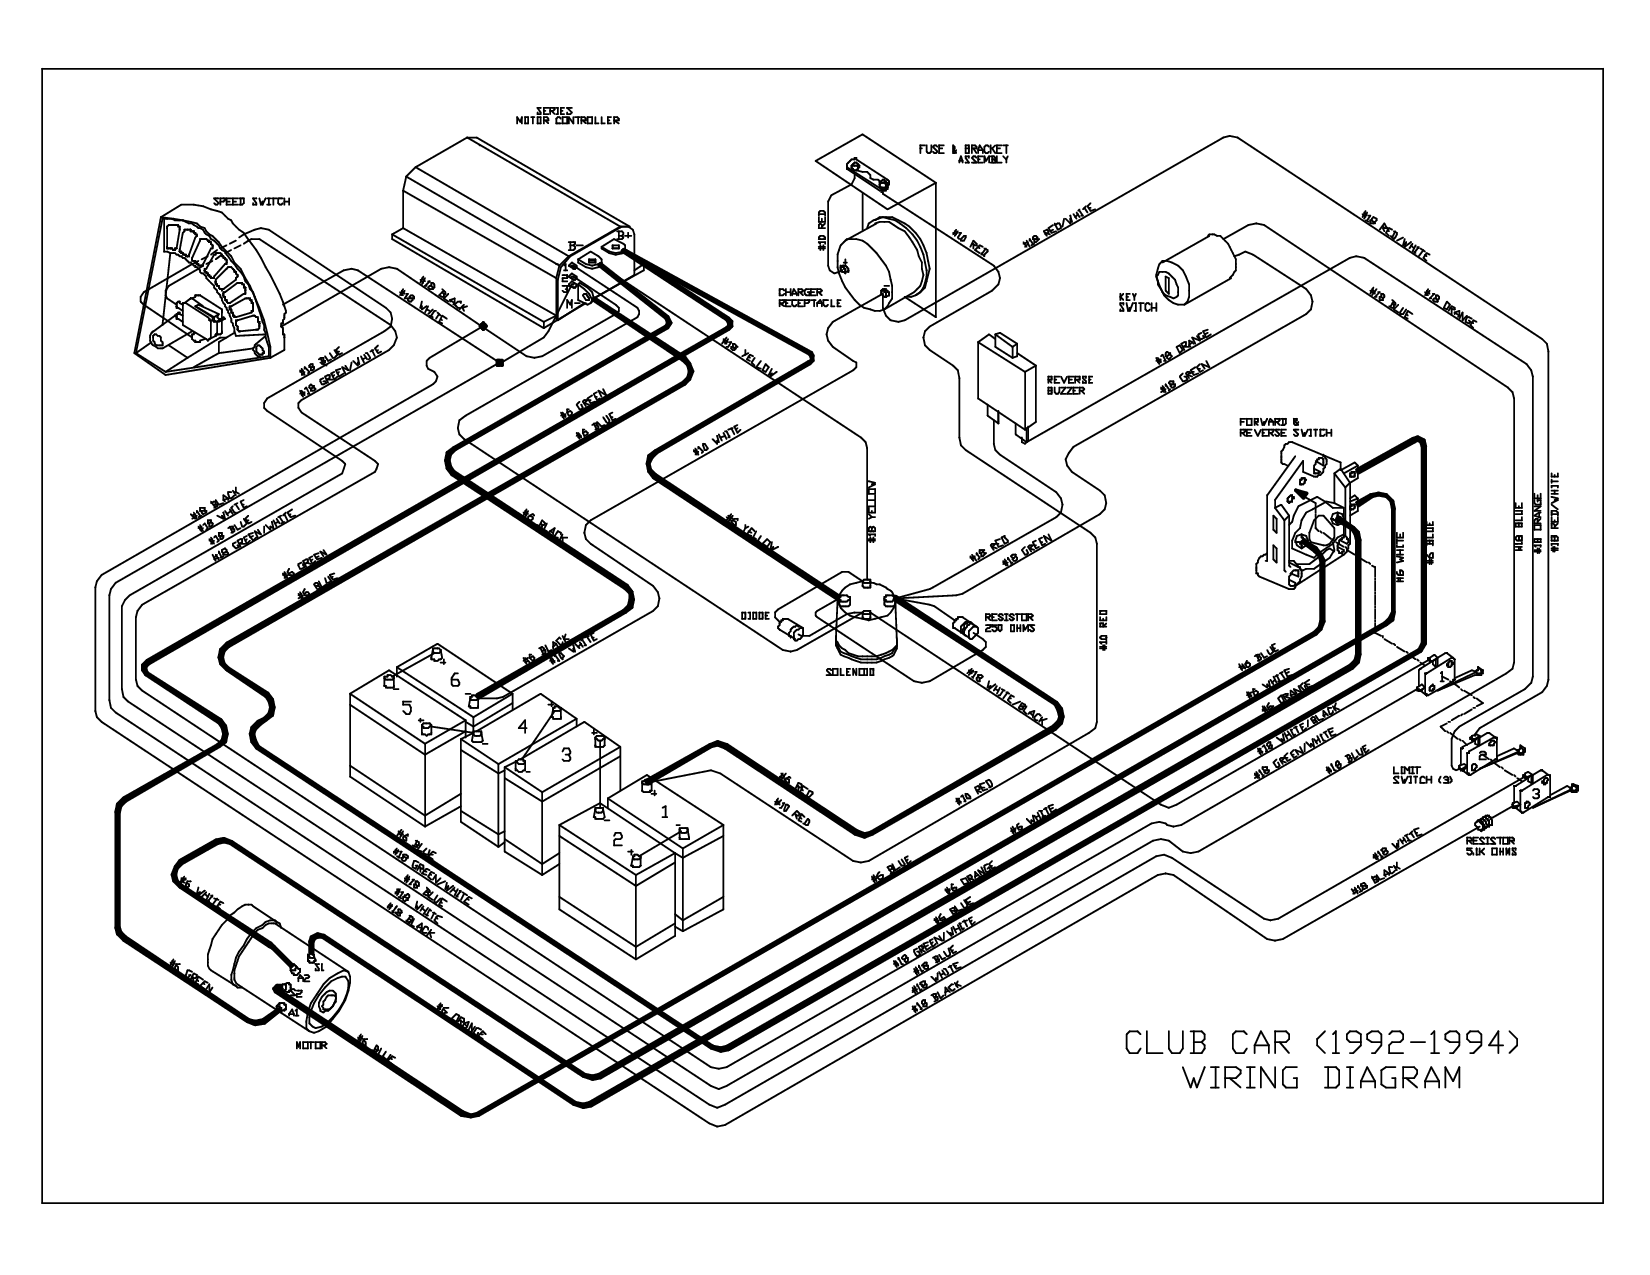 1995 club car wiring diagram | CLUB CAR (1992-1994) WIRING ... Yamaha G Electric Wiring Schematic on